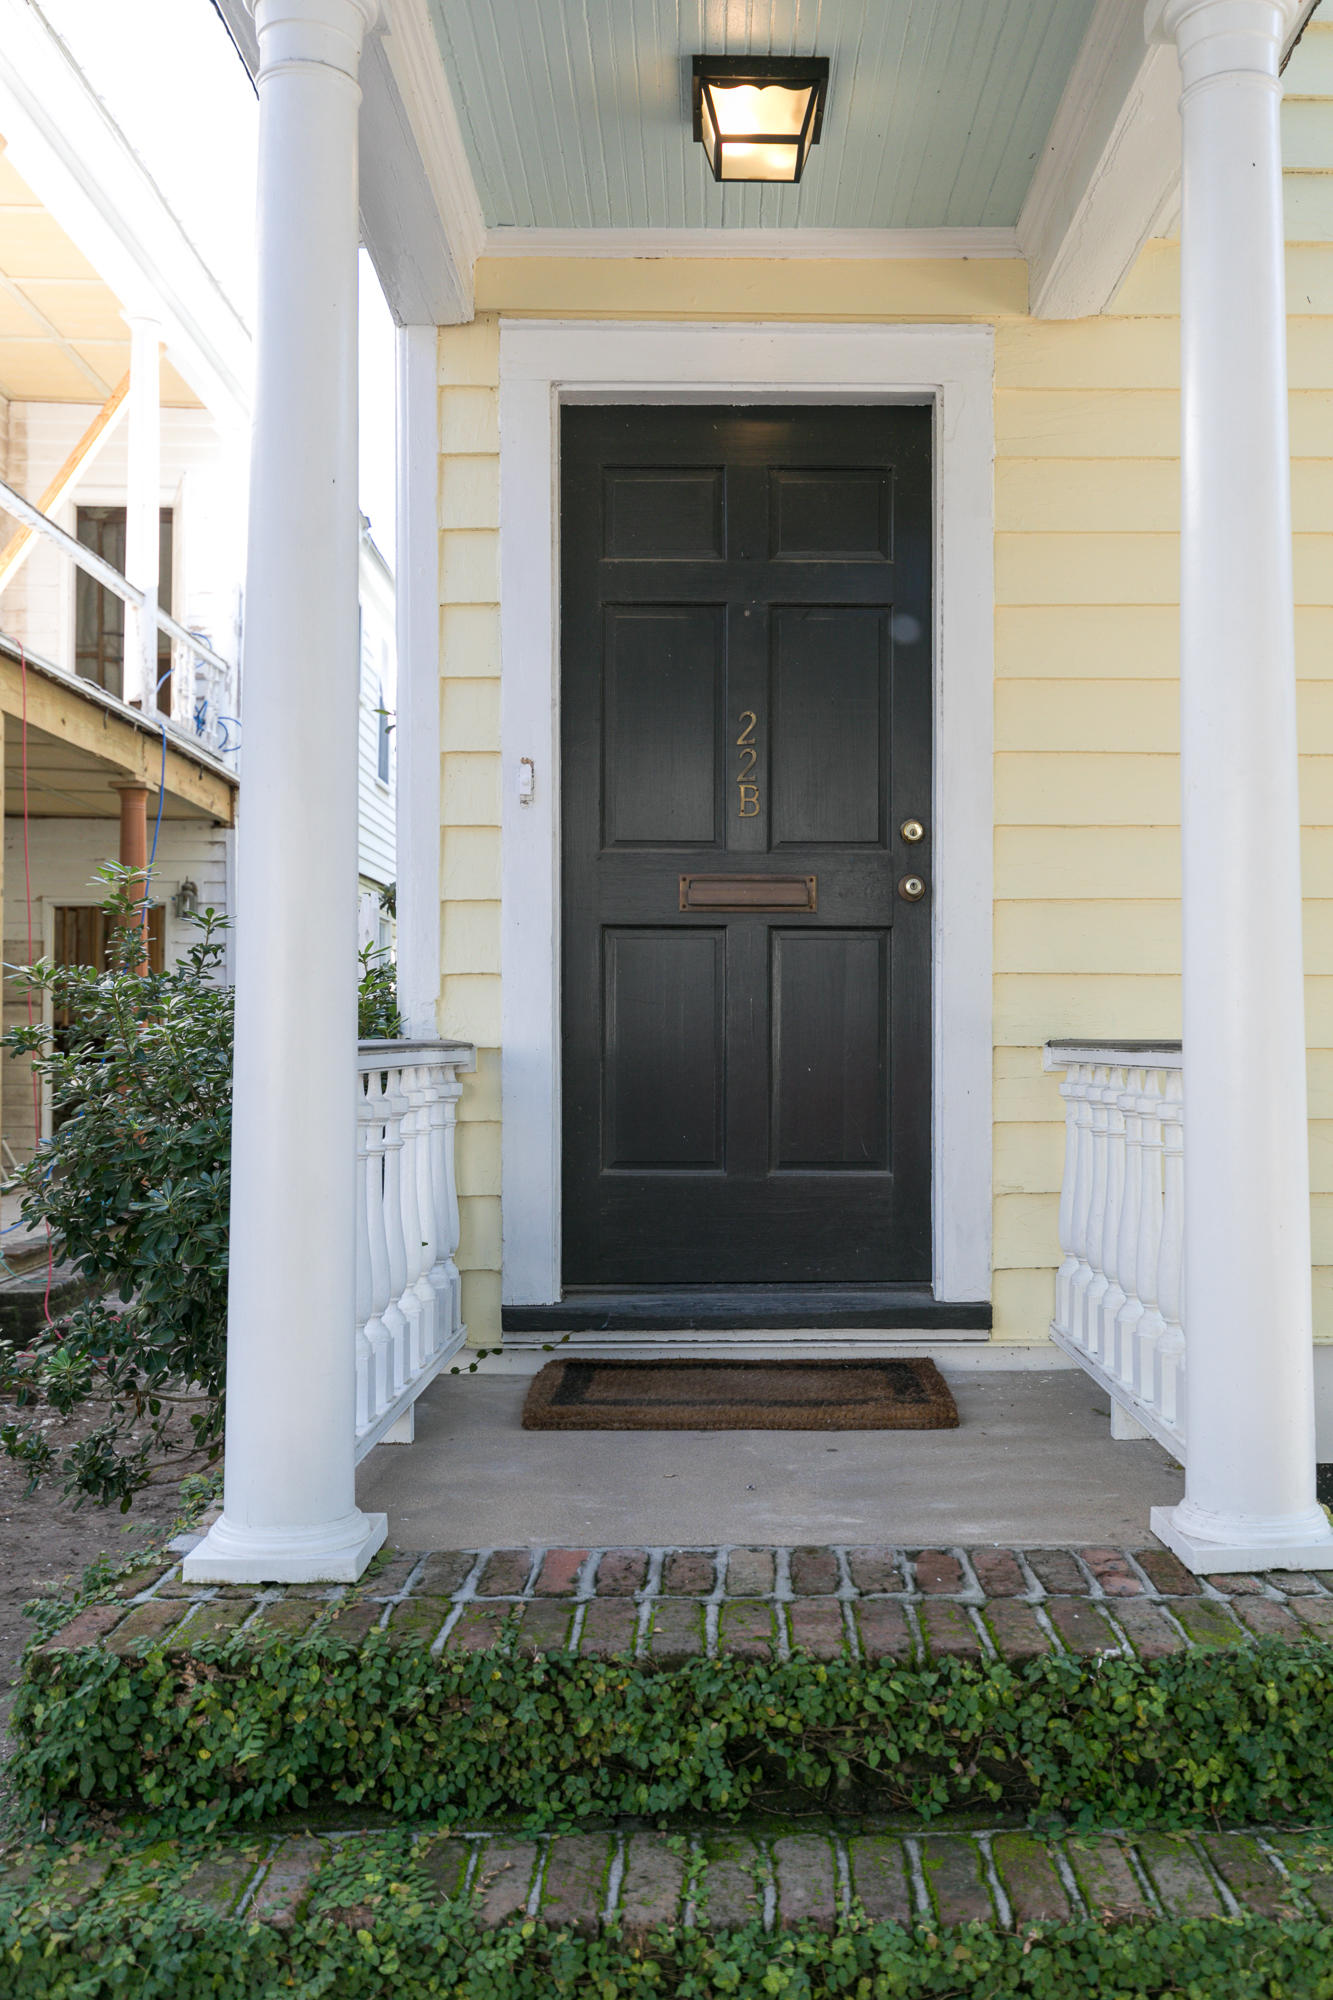 South of Broad Homes For Sale - 22 Council, Charleston, SC - 4